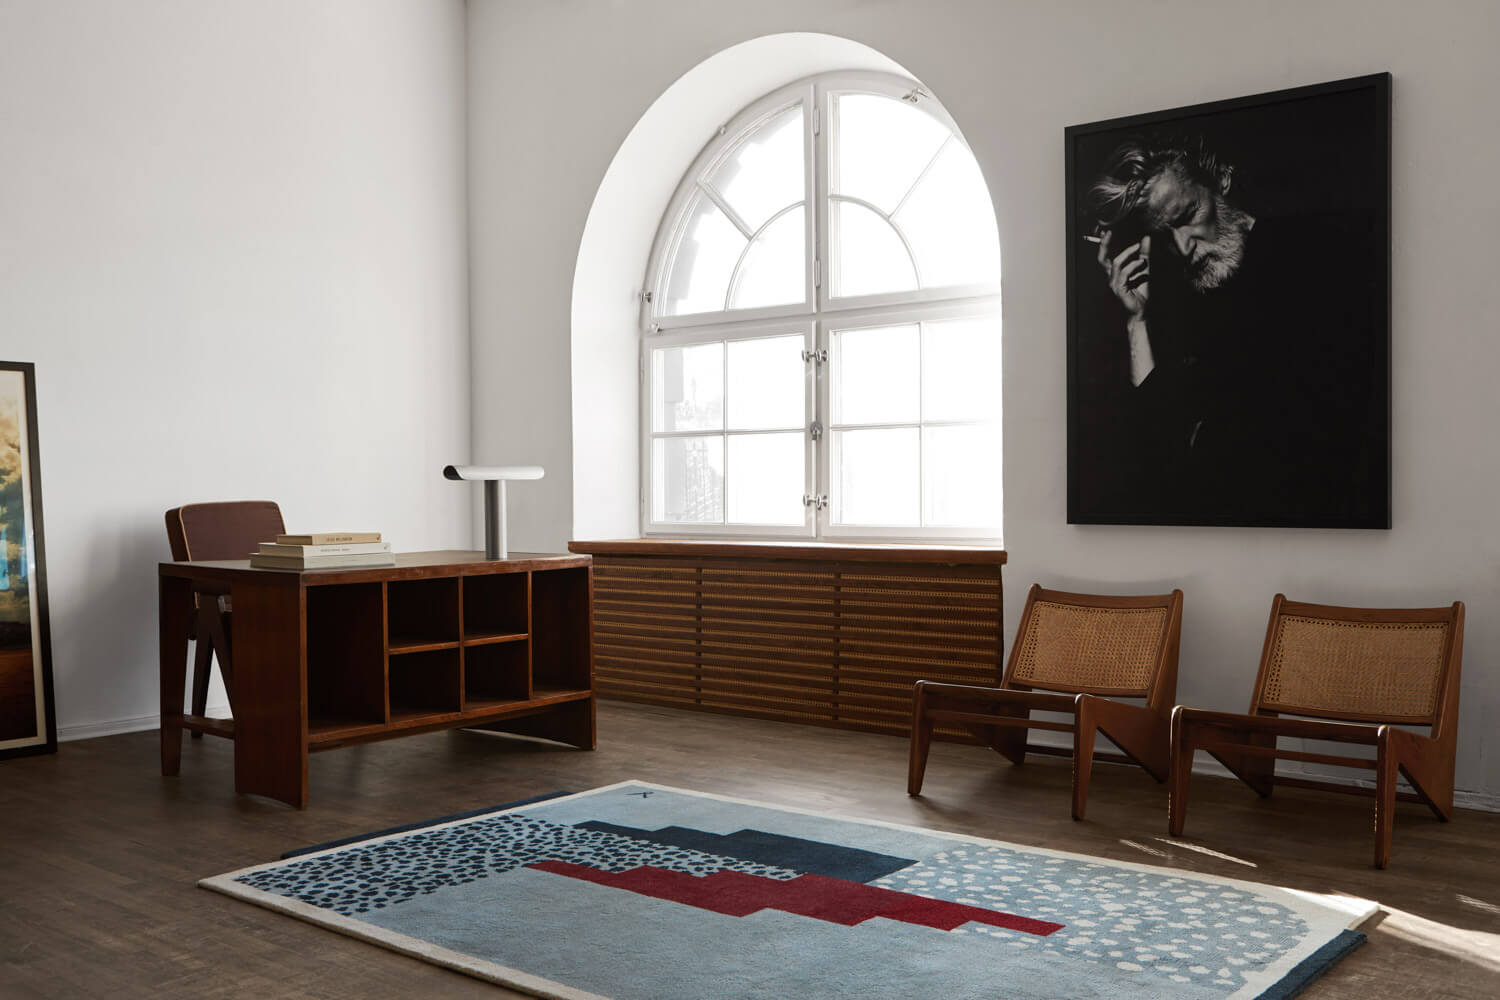 Art Deco Blue Rug in a beautiful studio office with antique furniture.